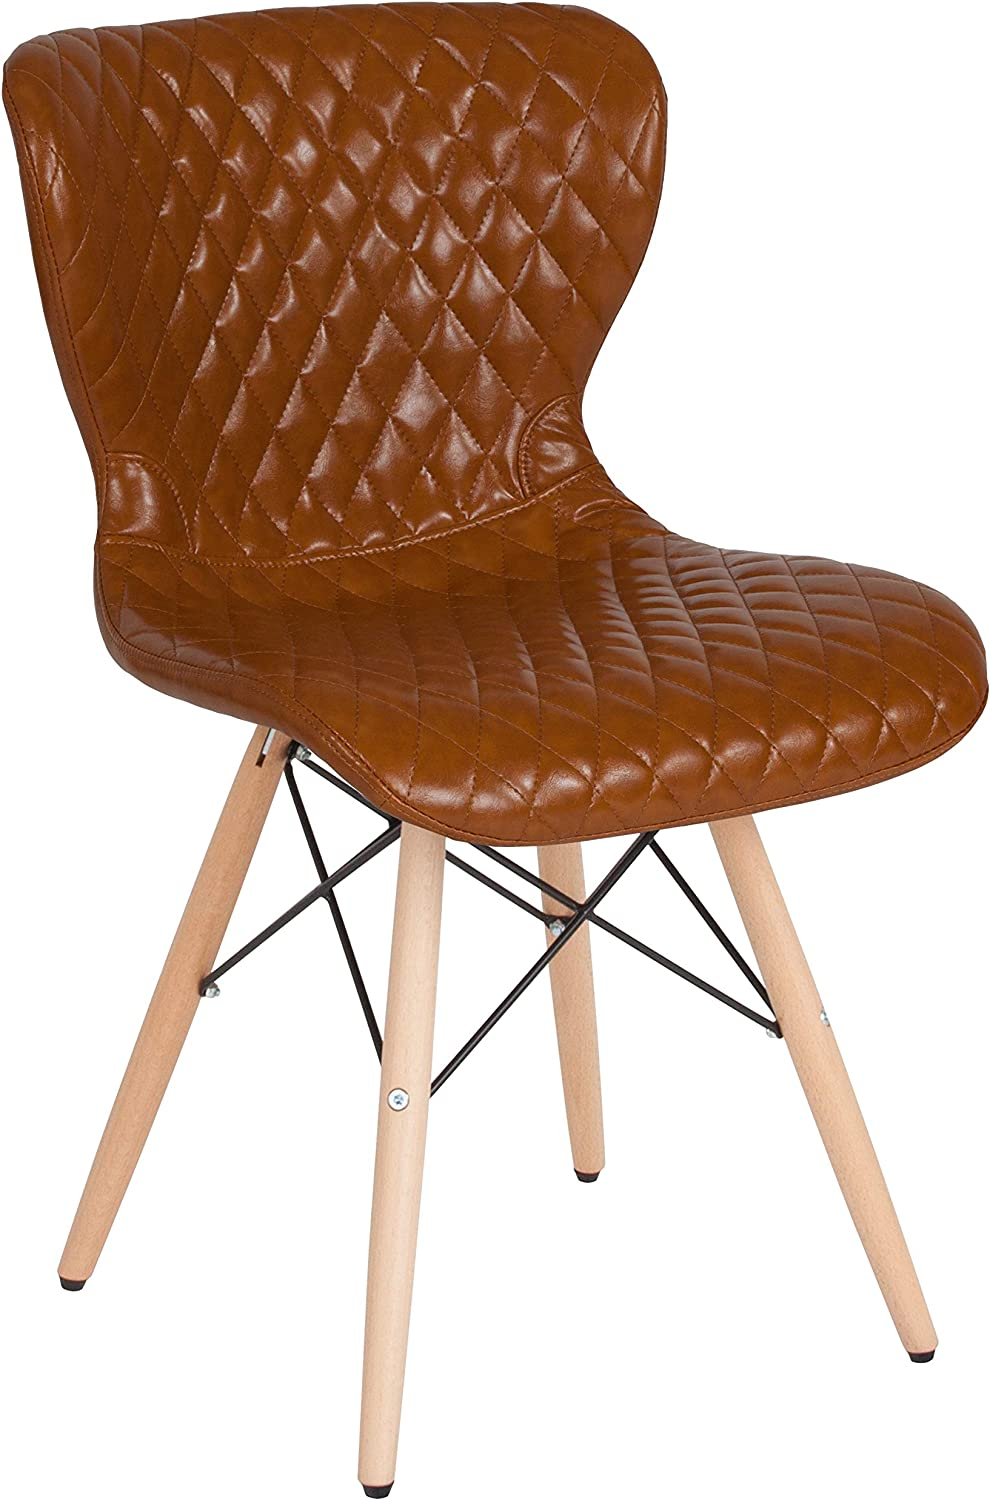 Flash Furniture Riverside Contemporary Upholstered Chair with Wooden Legs in Saddle Vinyl